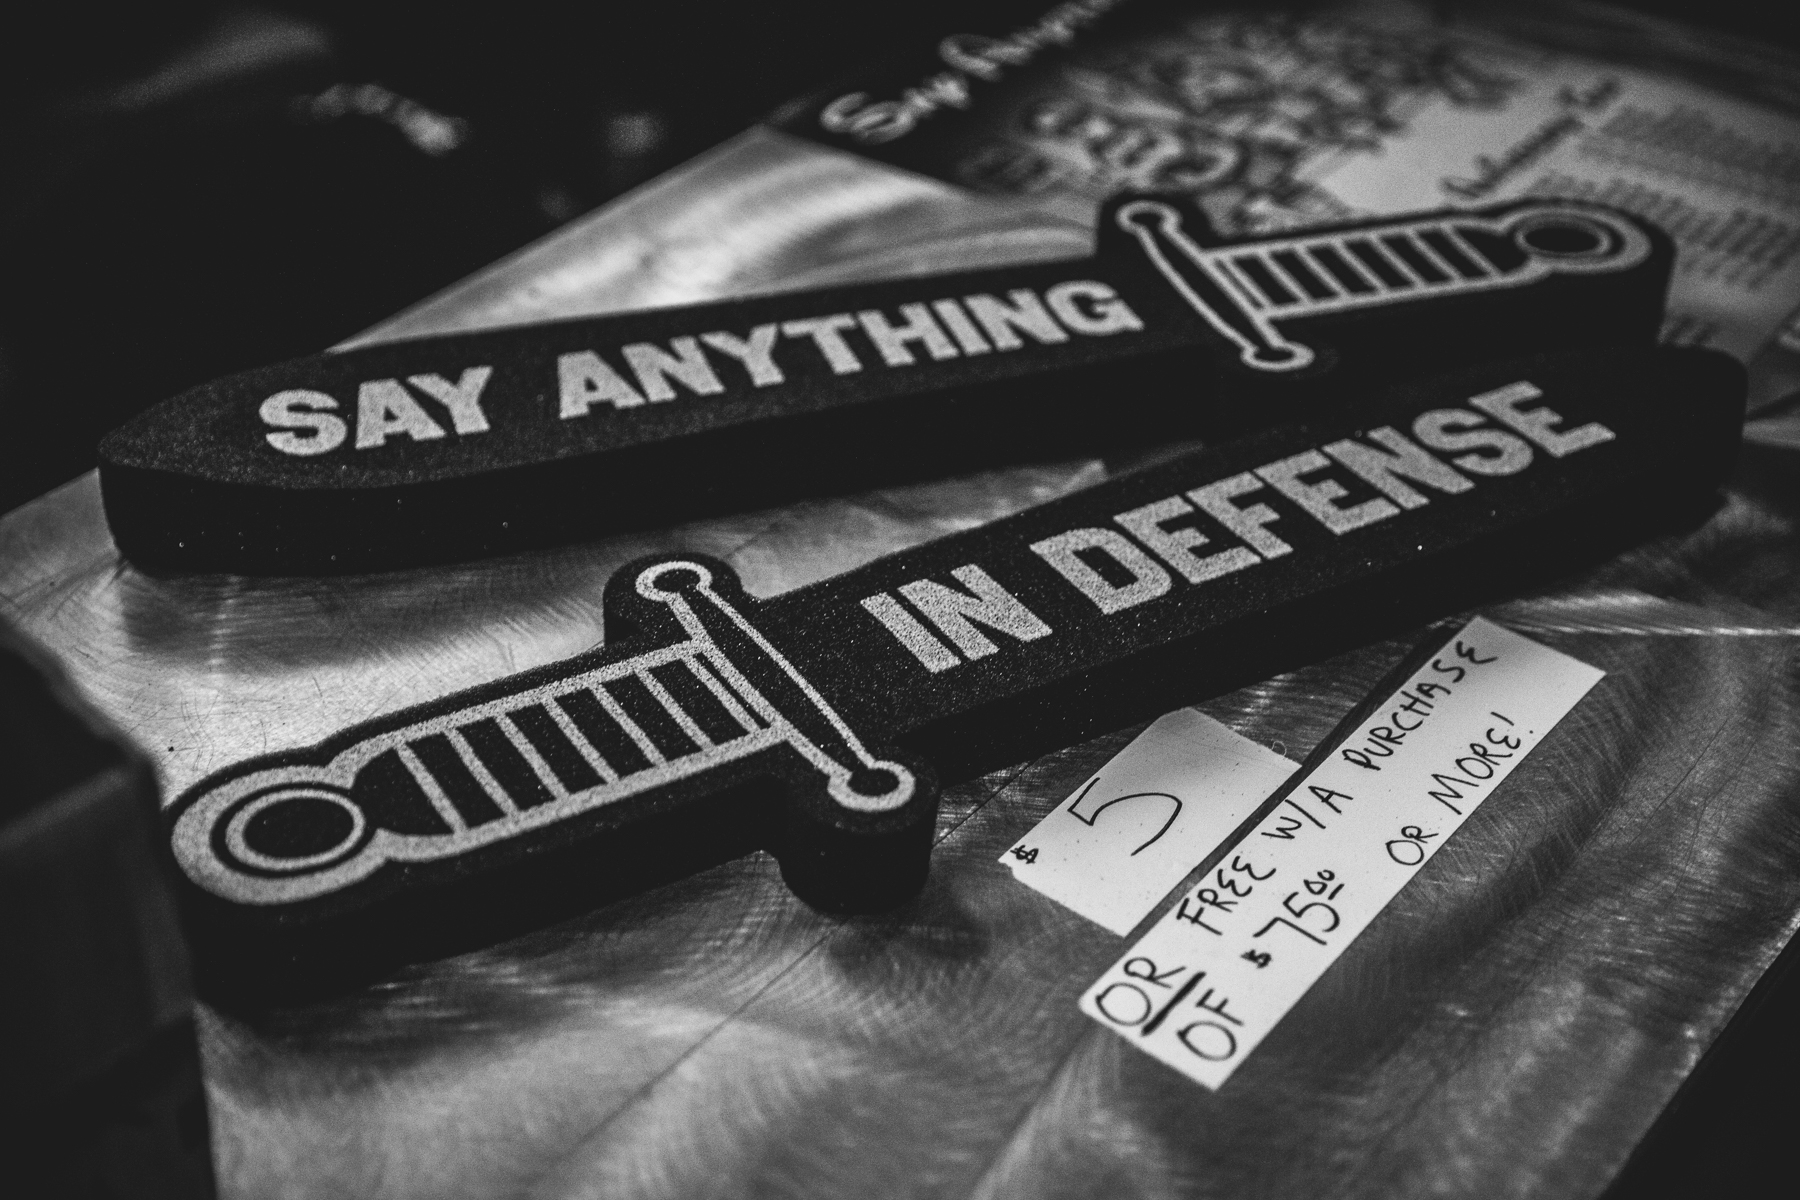 Say Anything • Delmar Hall • St. Louis, MO • 12.18.18 & 12.19.17